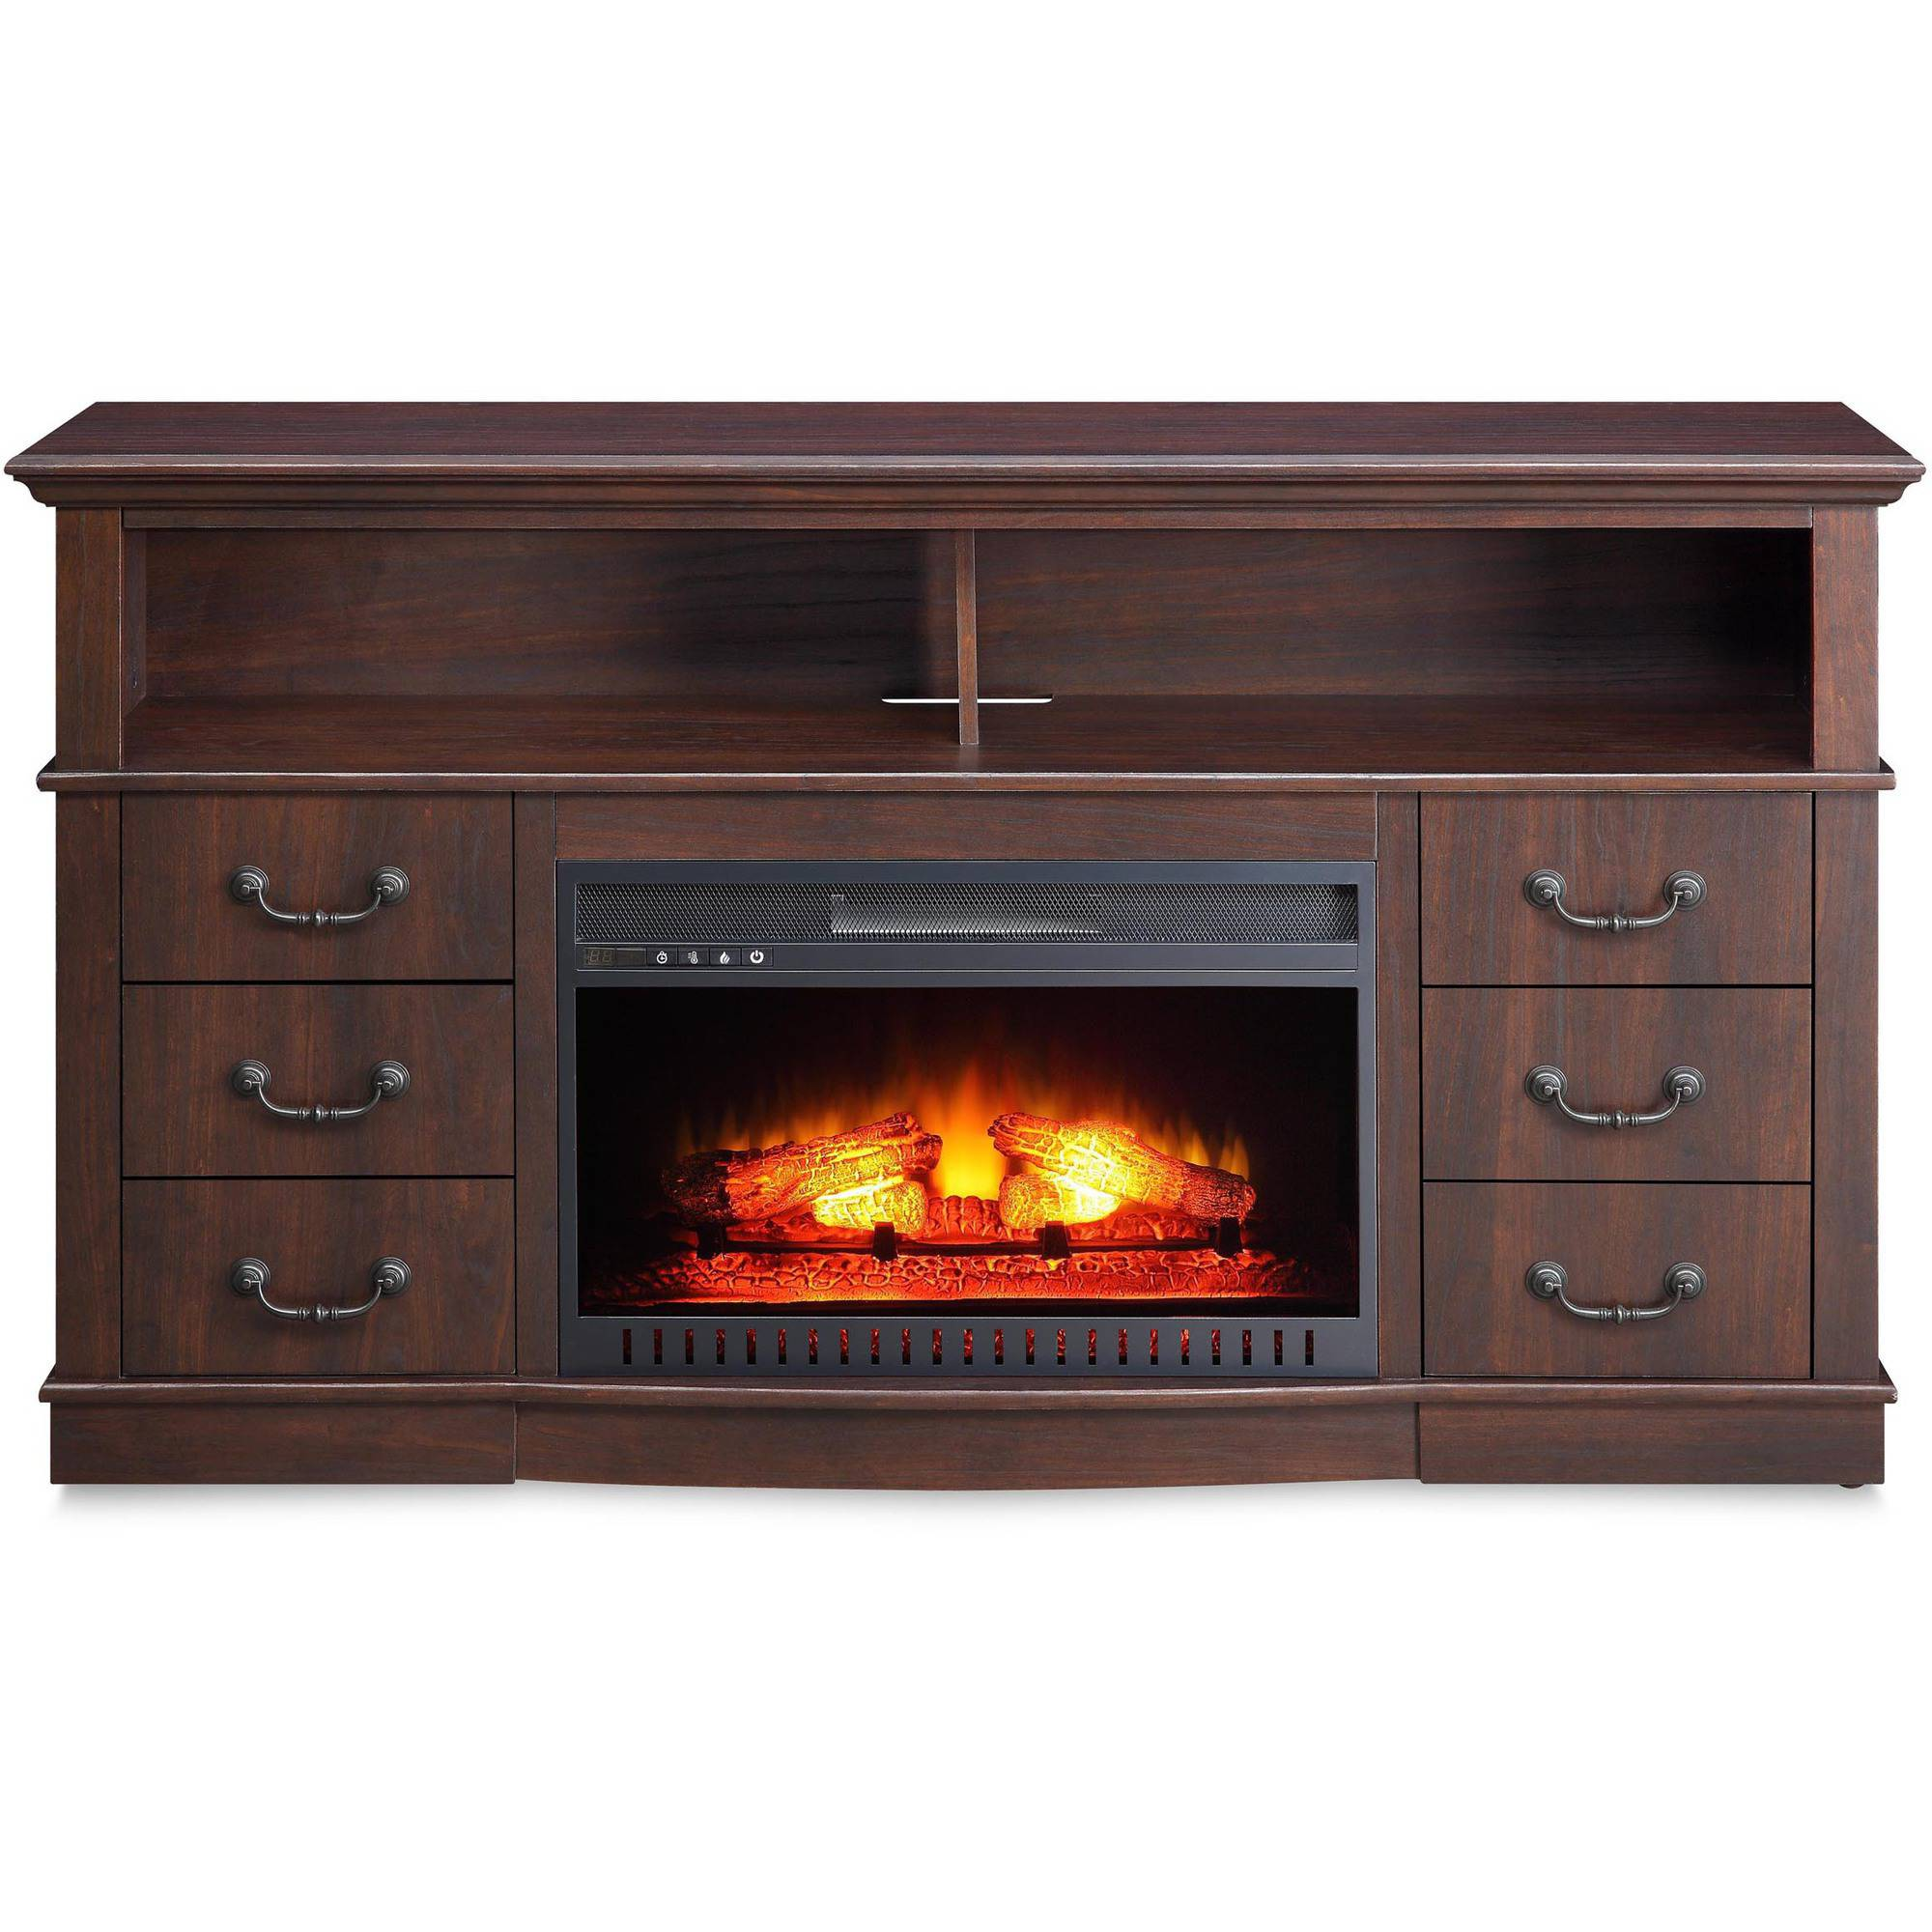 Better home and console fireplace media gardens for tv 39 s up to 70 for Better homes and gardens fireplace tv stand